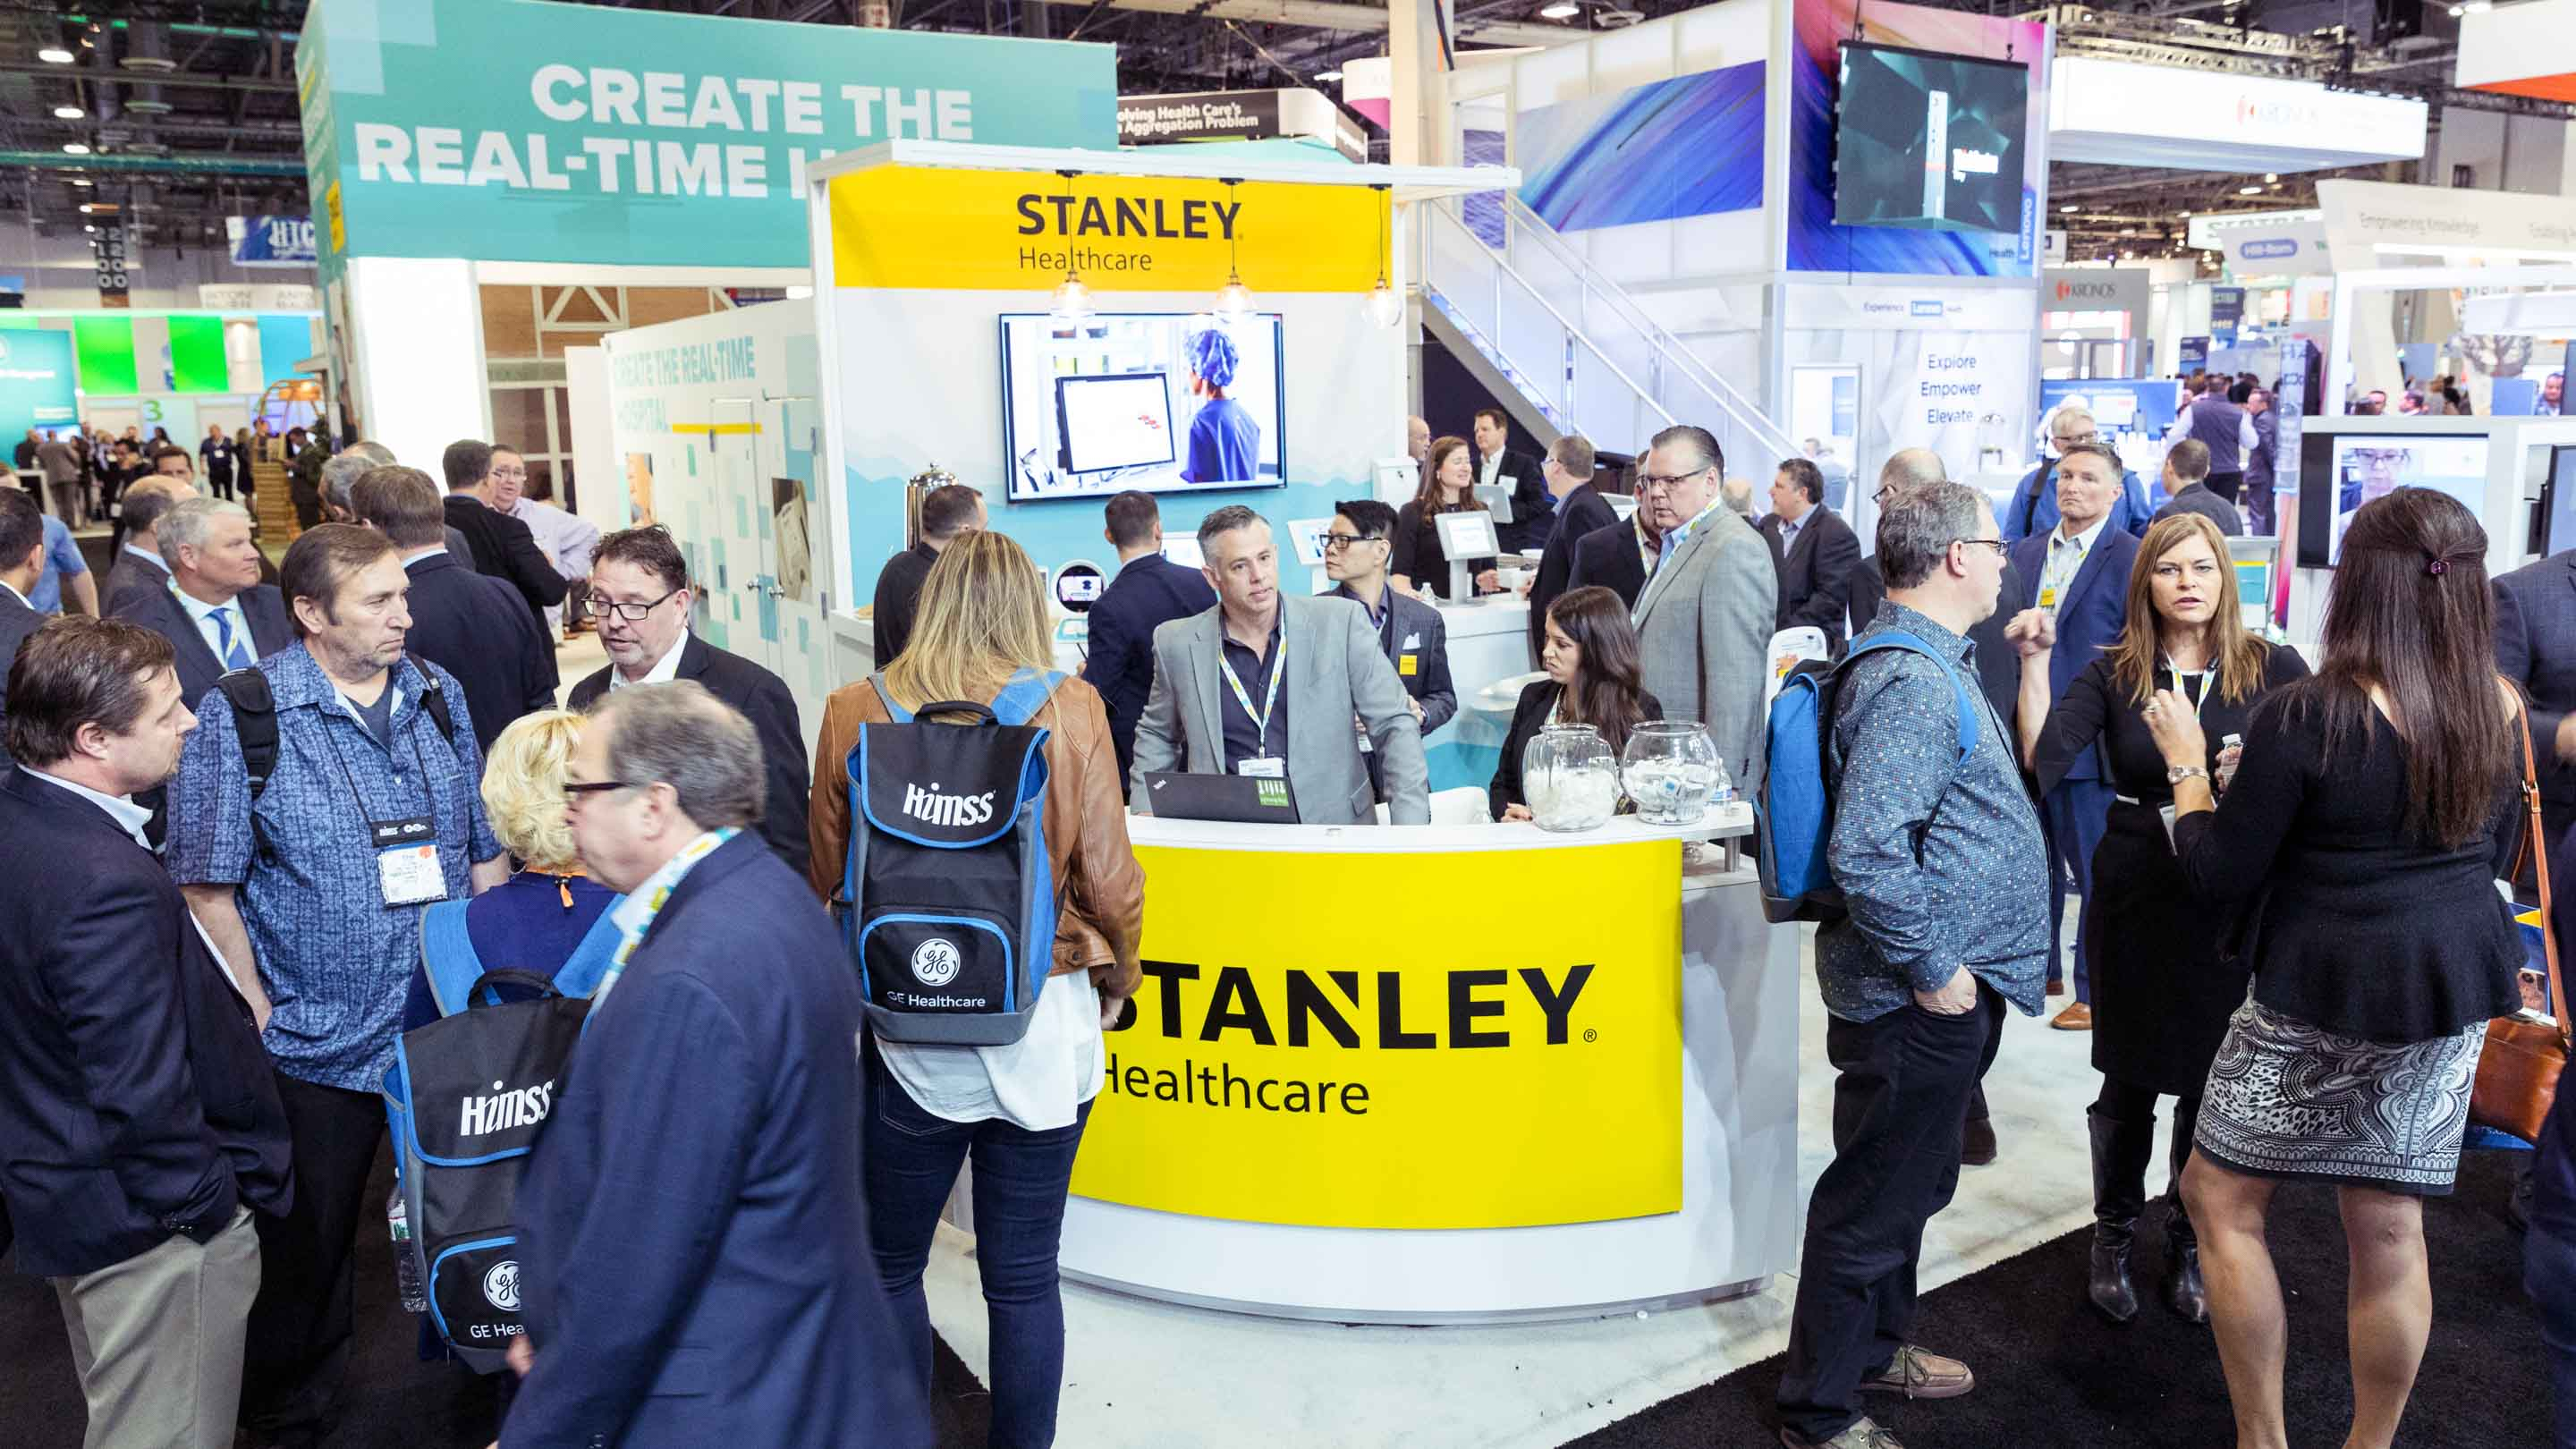 STANLEY Healthcare event booth with crowd of people